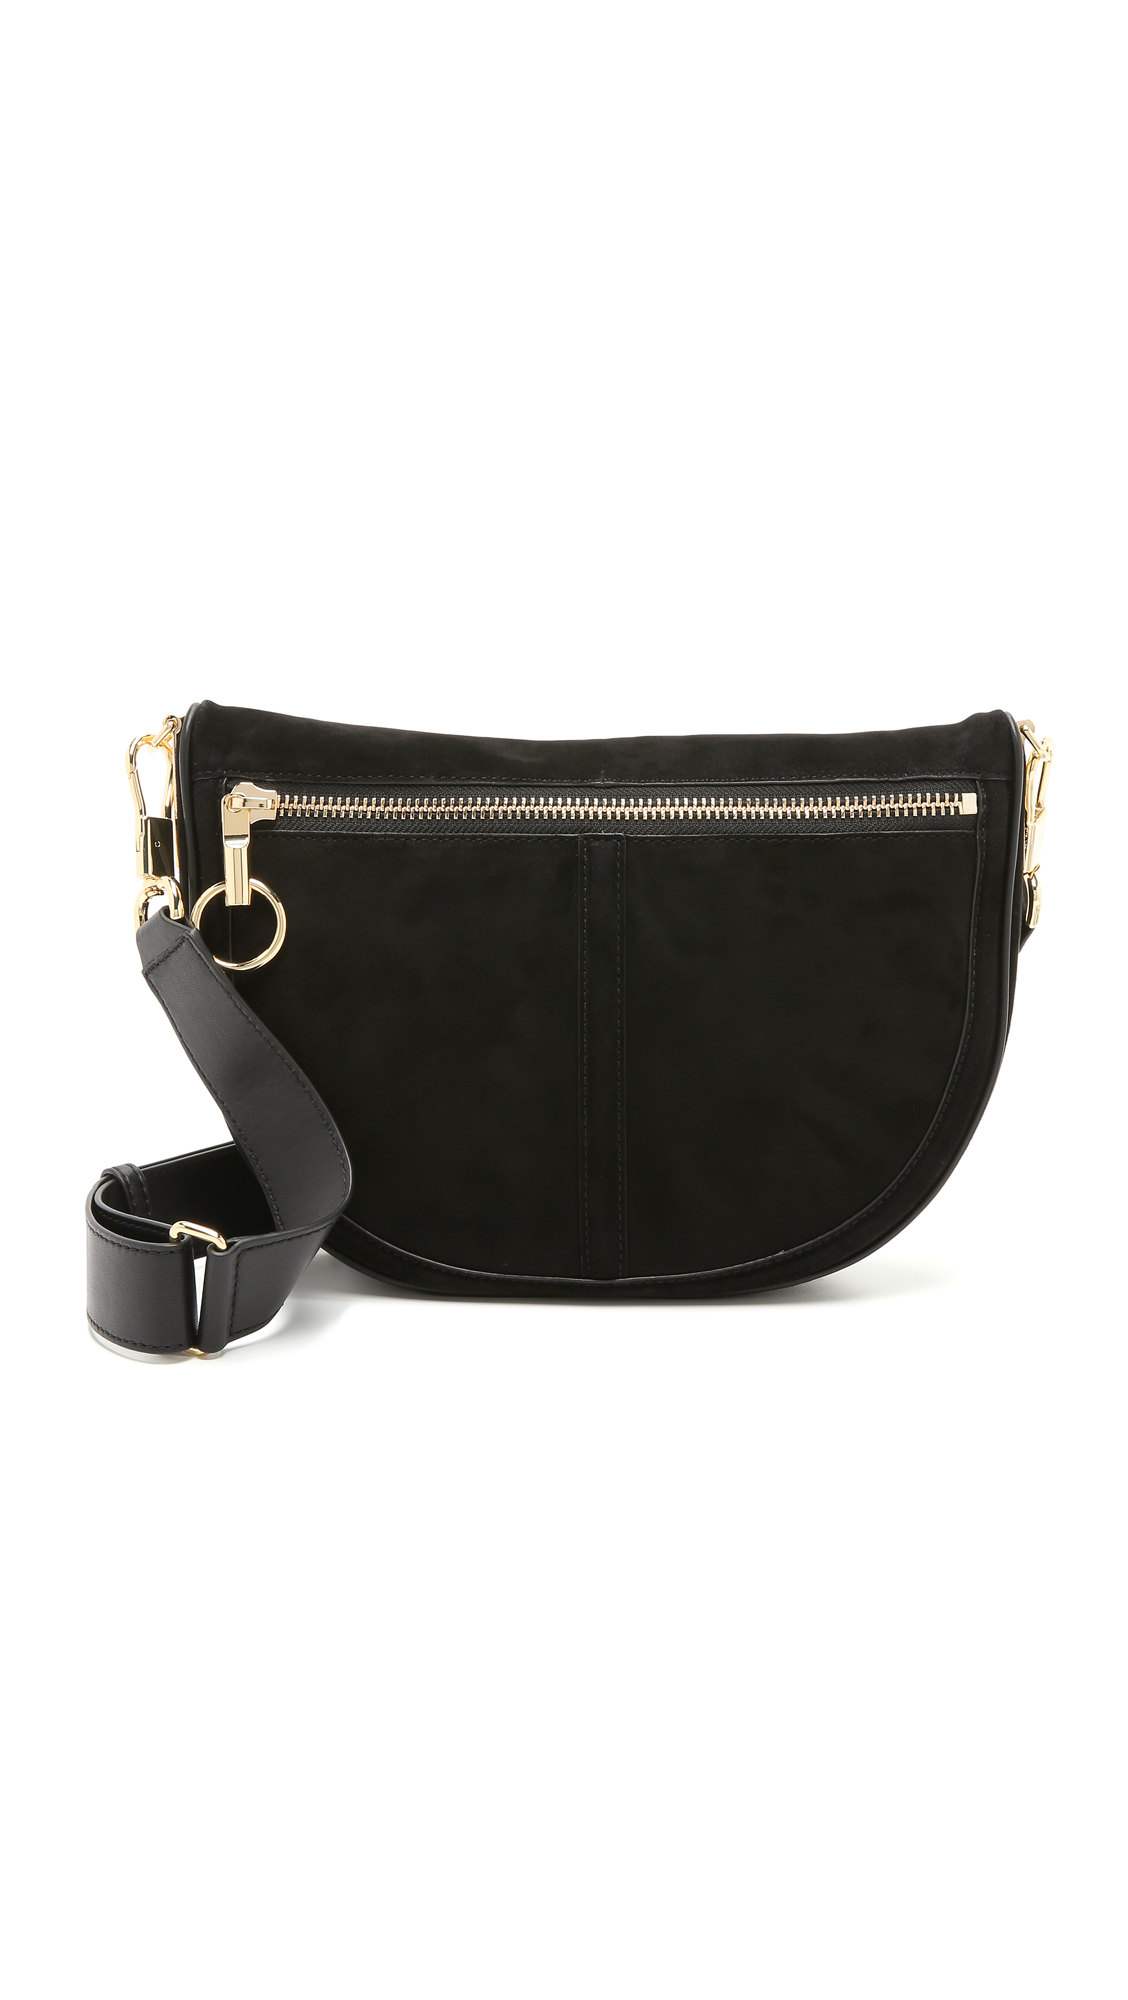 5fd6a78696 Elizabeth and James Scott Small Moon Saddle Bag in Black - Lyst